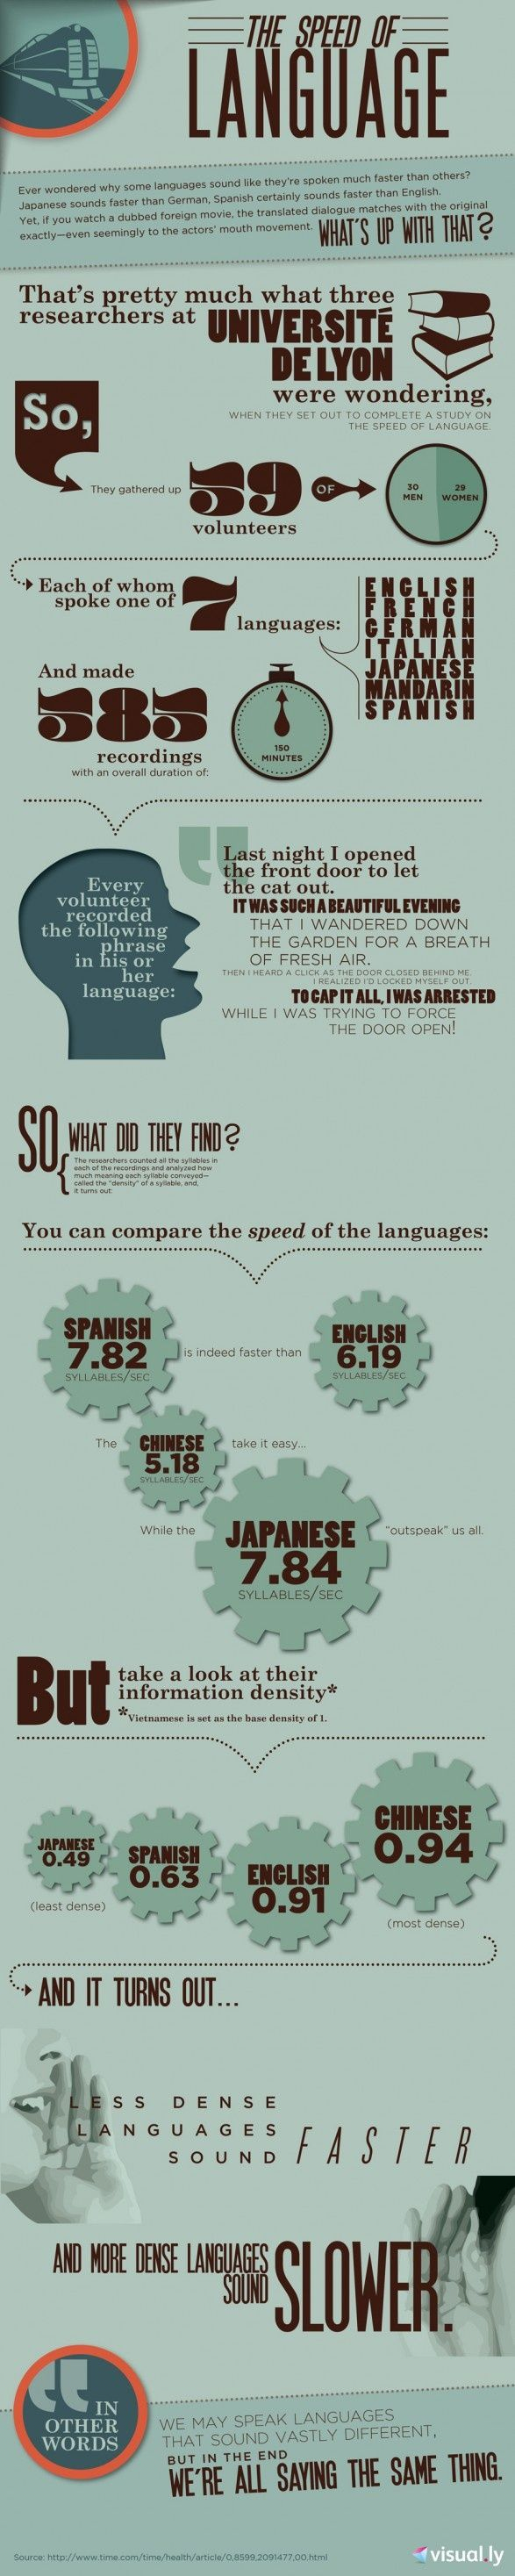 15 best Infographics images on Pinterest | Info graphics, Languages ...